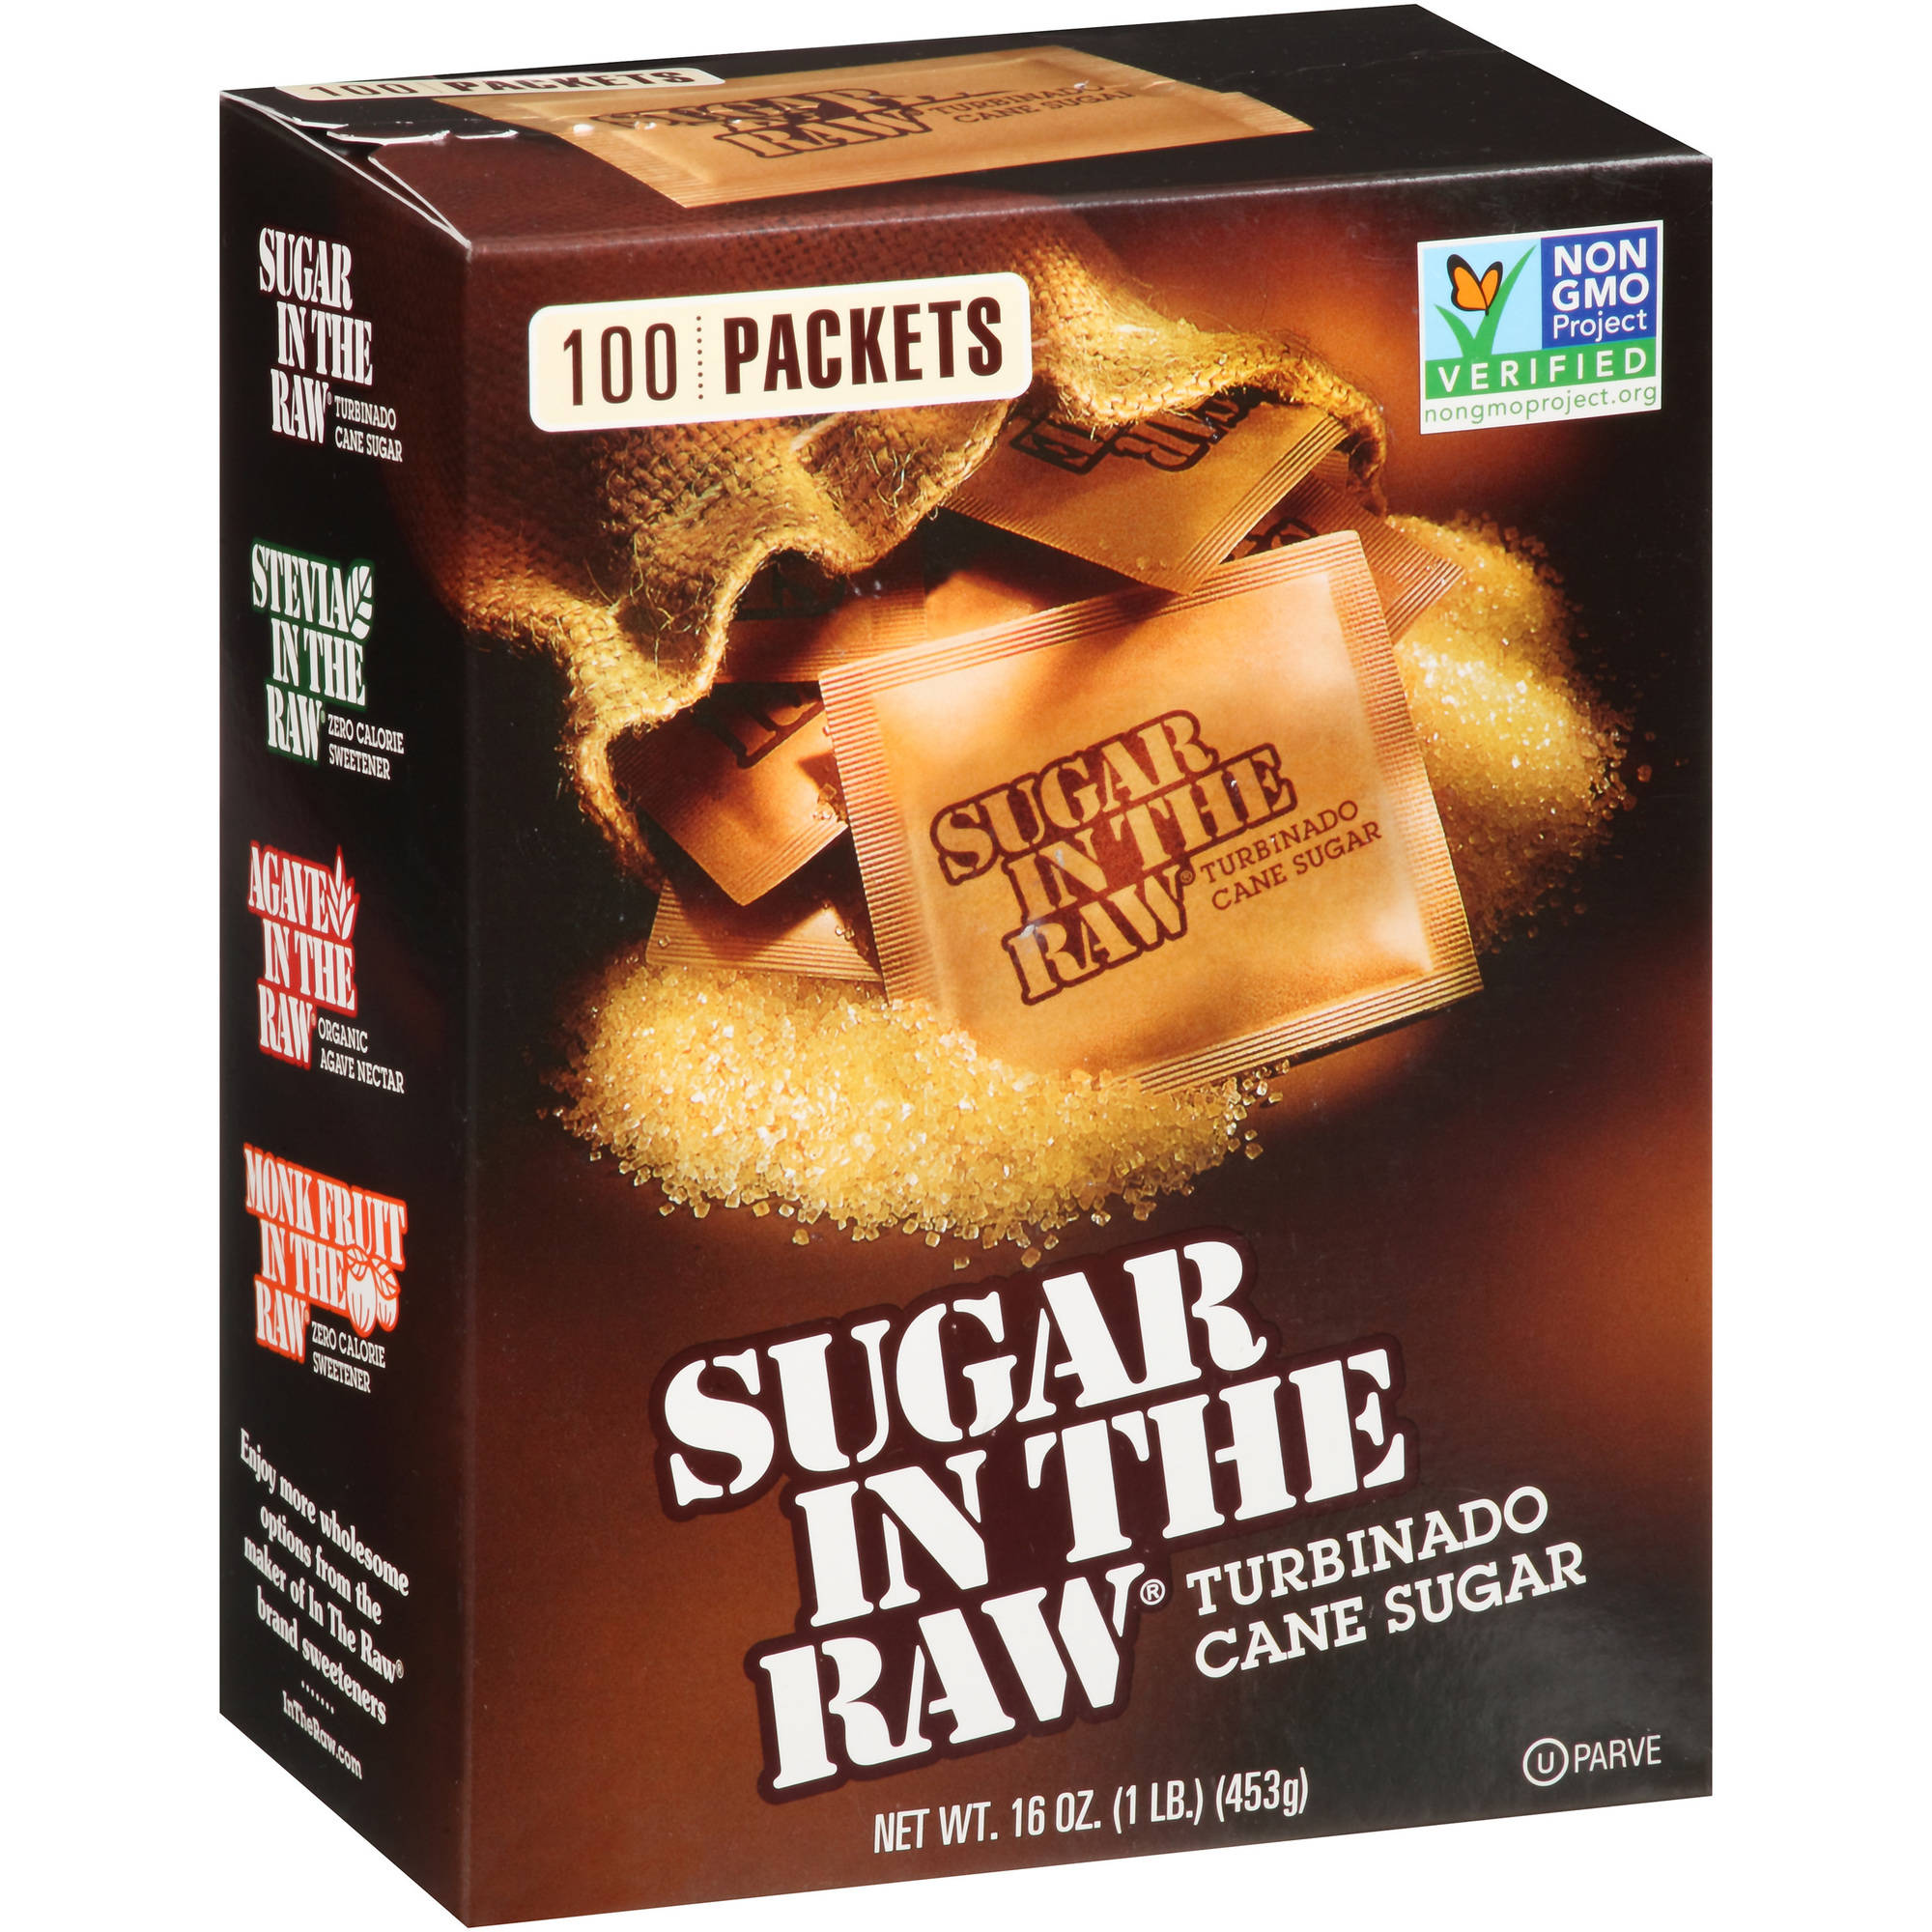 Sugar in the Raw Turbinado Cane Sugar, 100 count, 16 oz